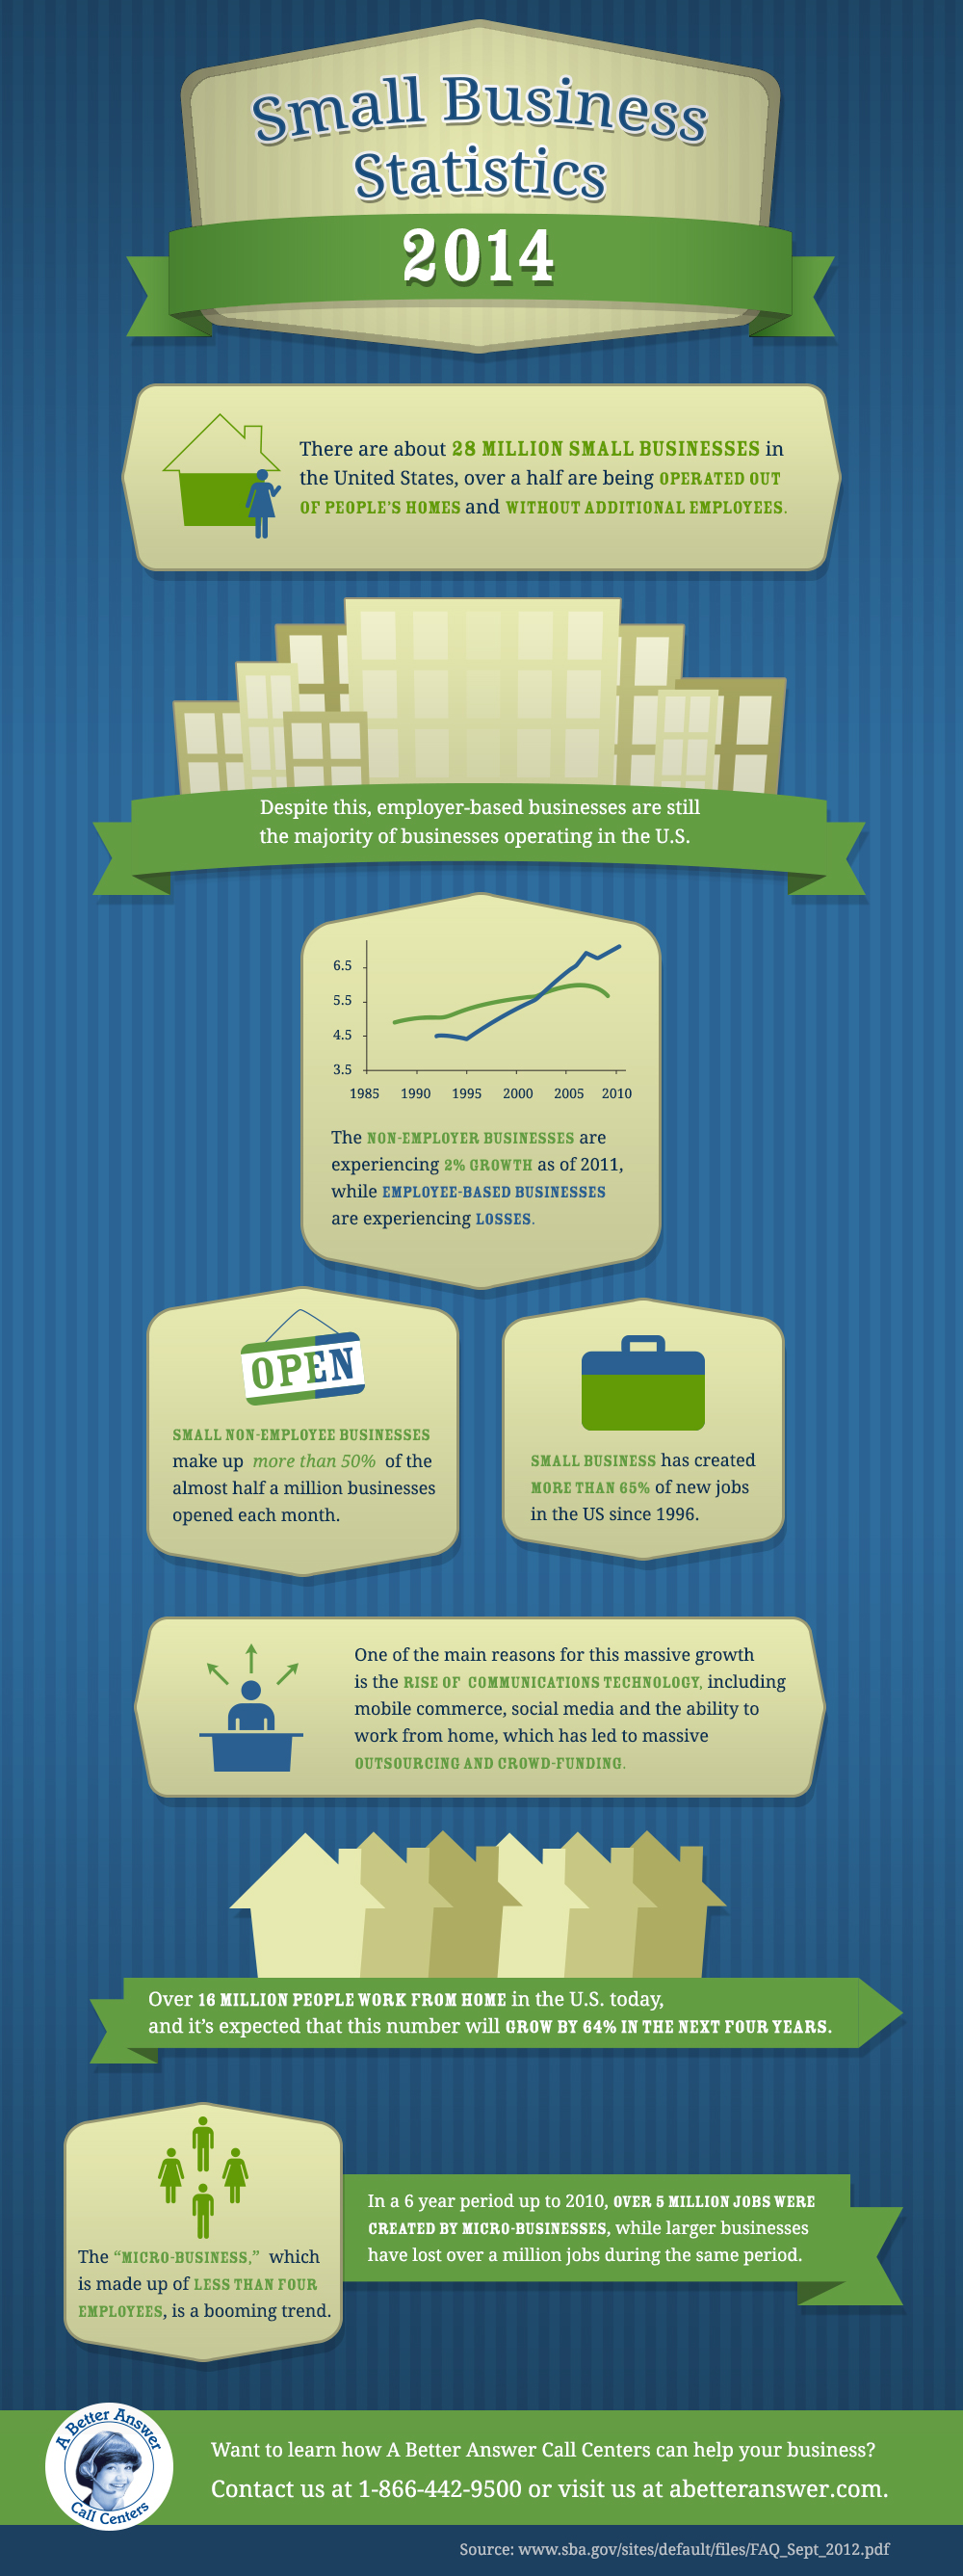 Small Business Statistics of 2014